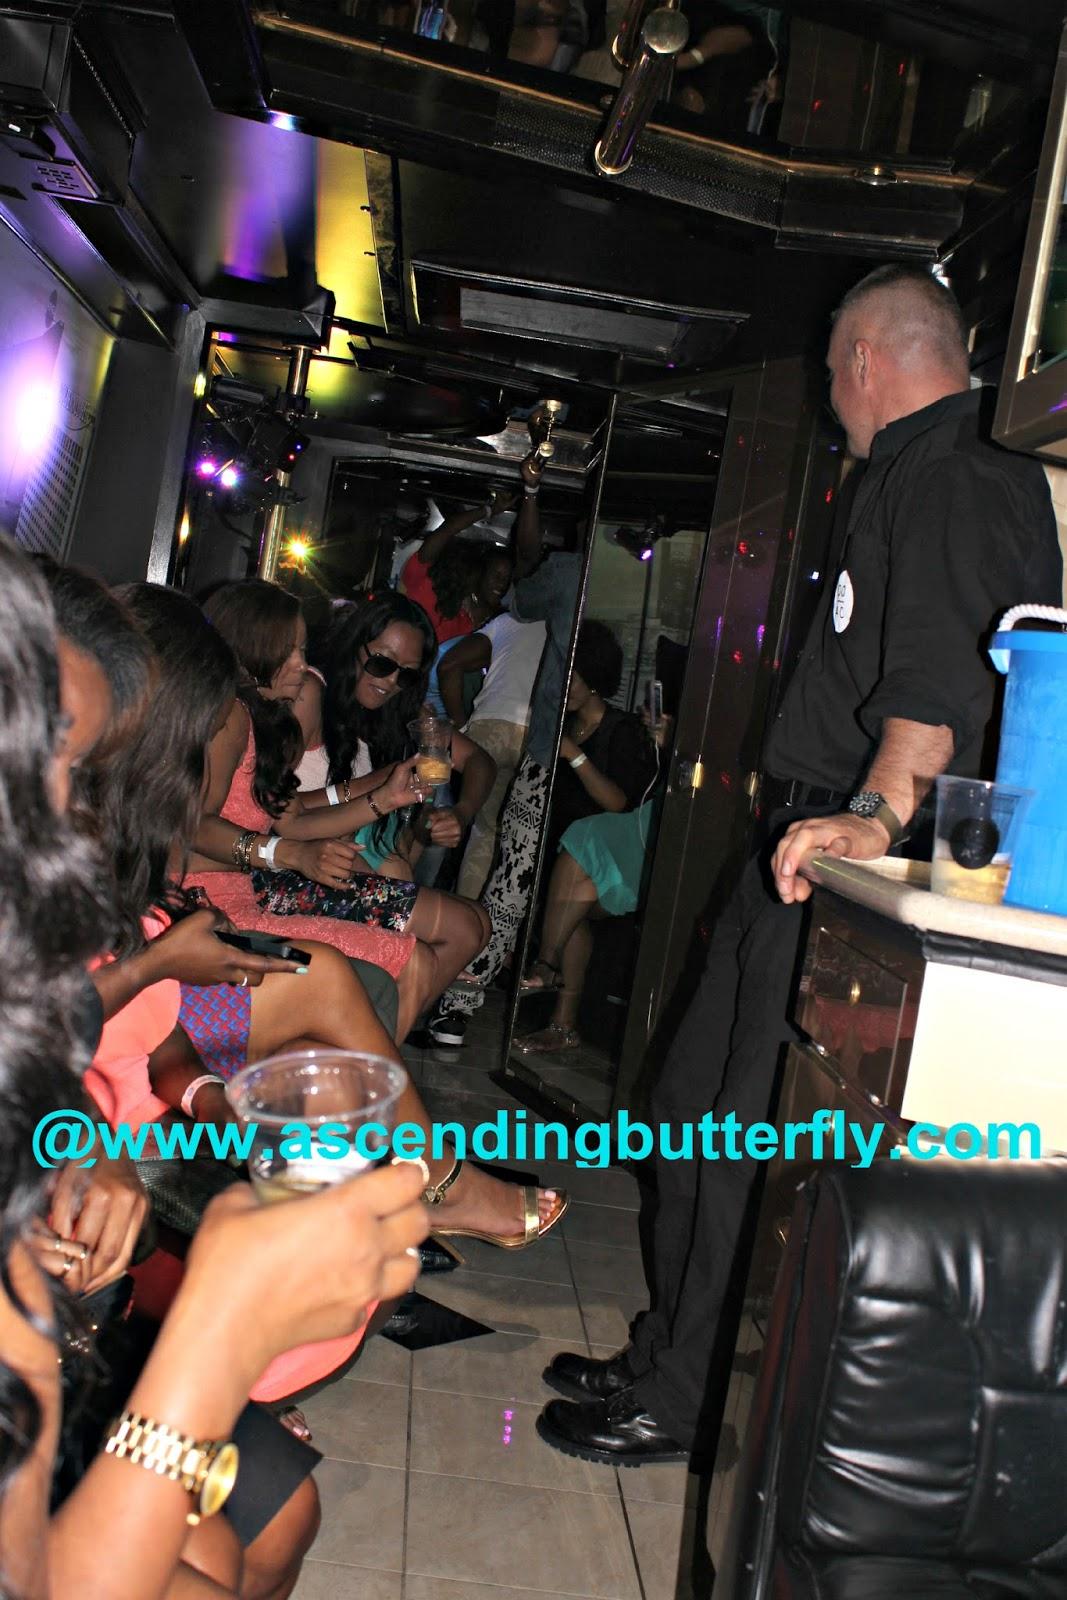 Steve, #DOACNightlife Bus, Party Bus, Atlantic City, Visit AC, Atlantic City Alliance, DO AC, DO AC Nightlife